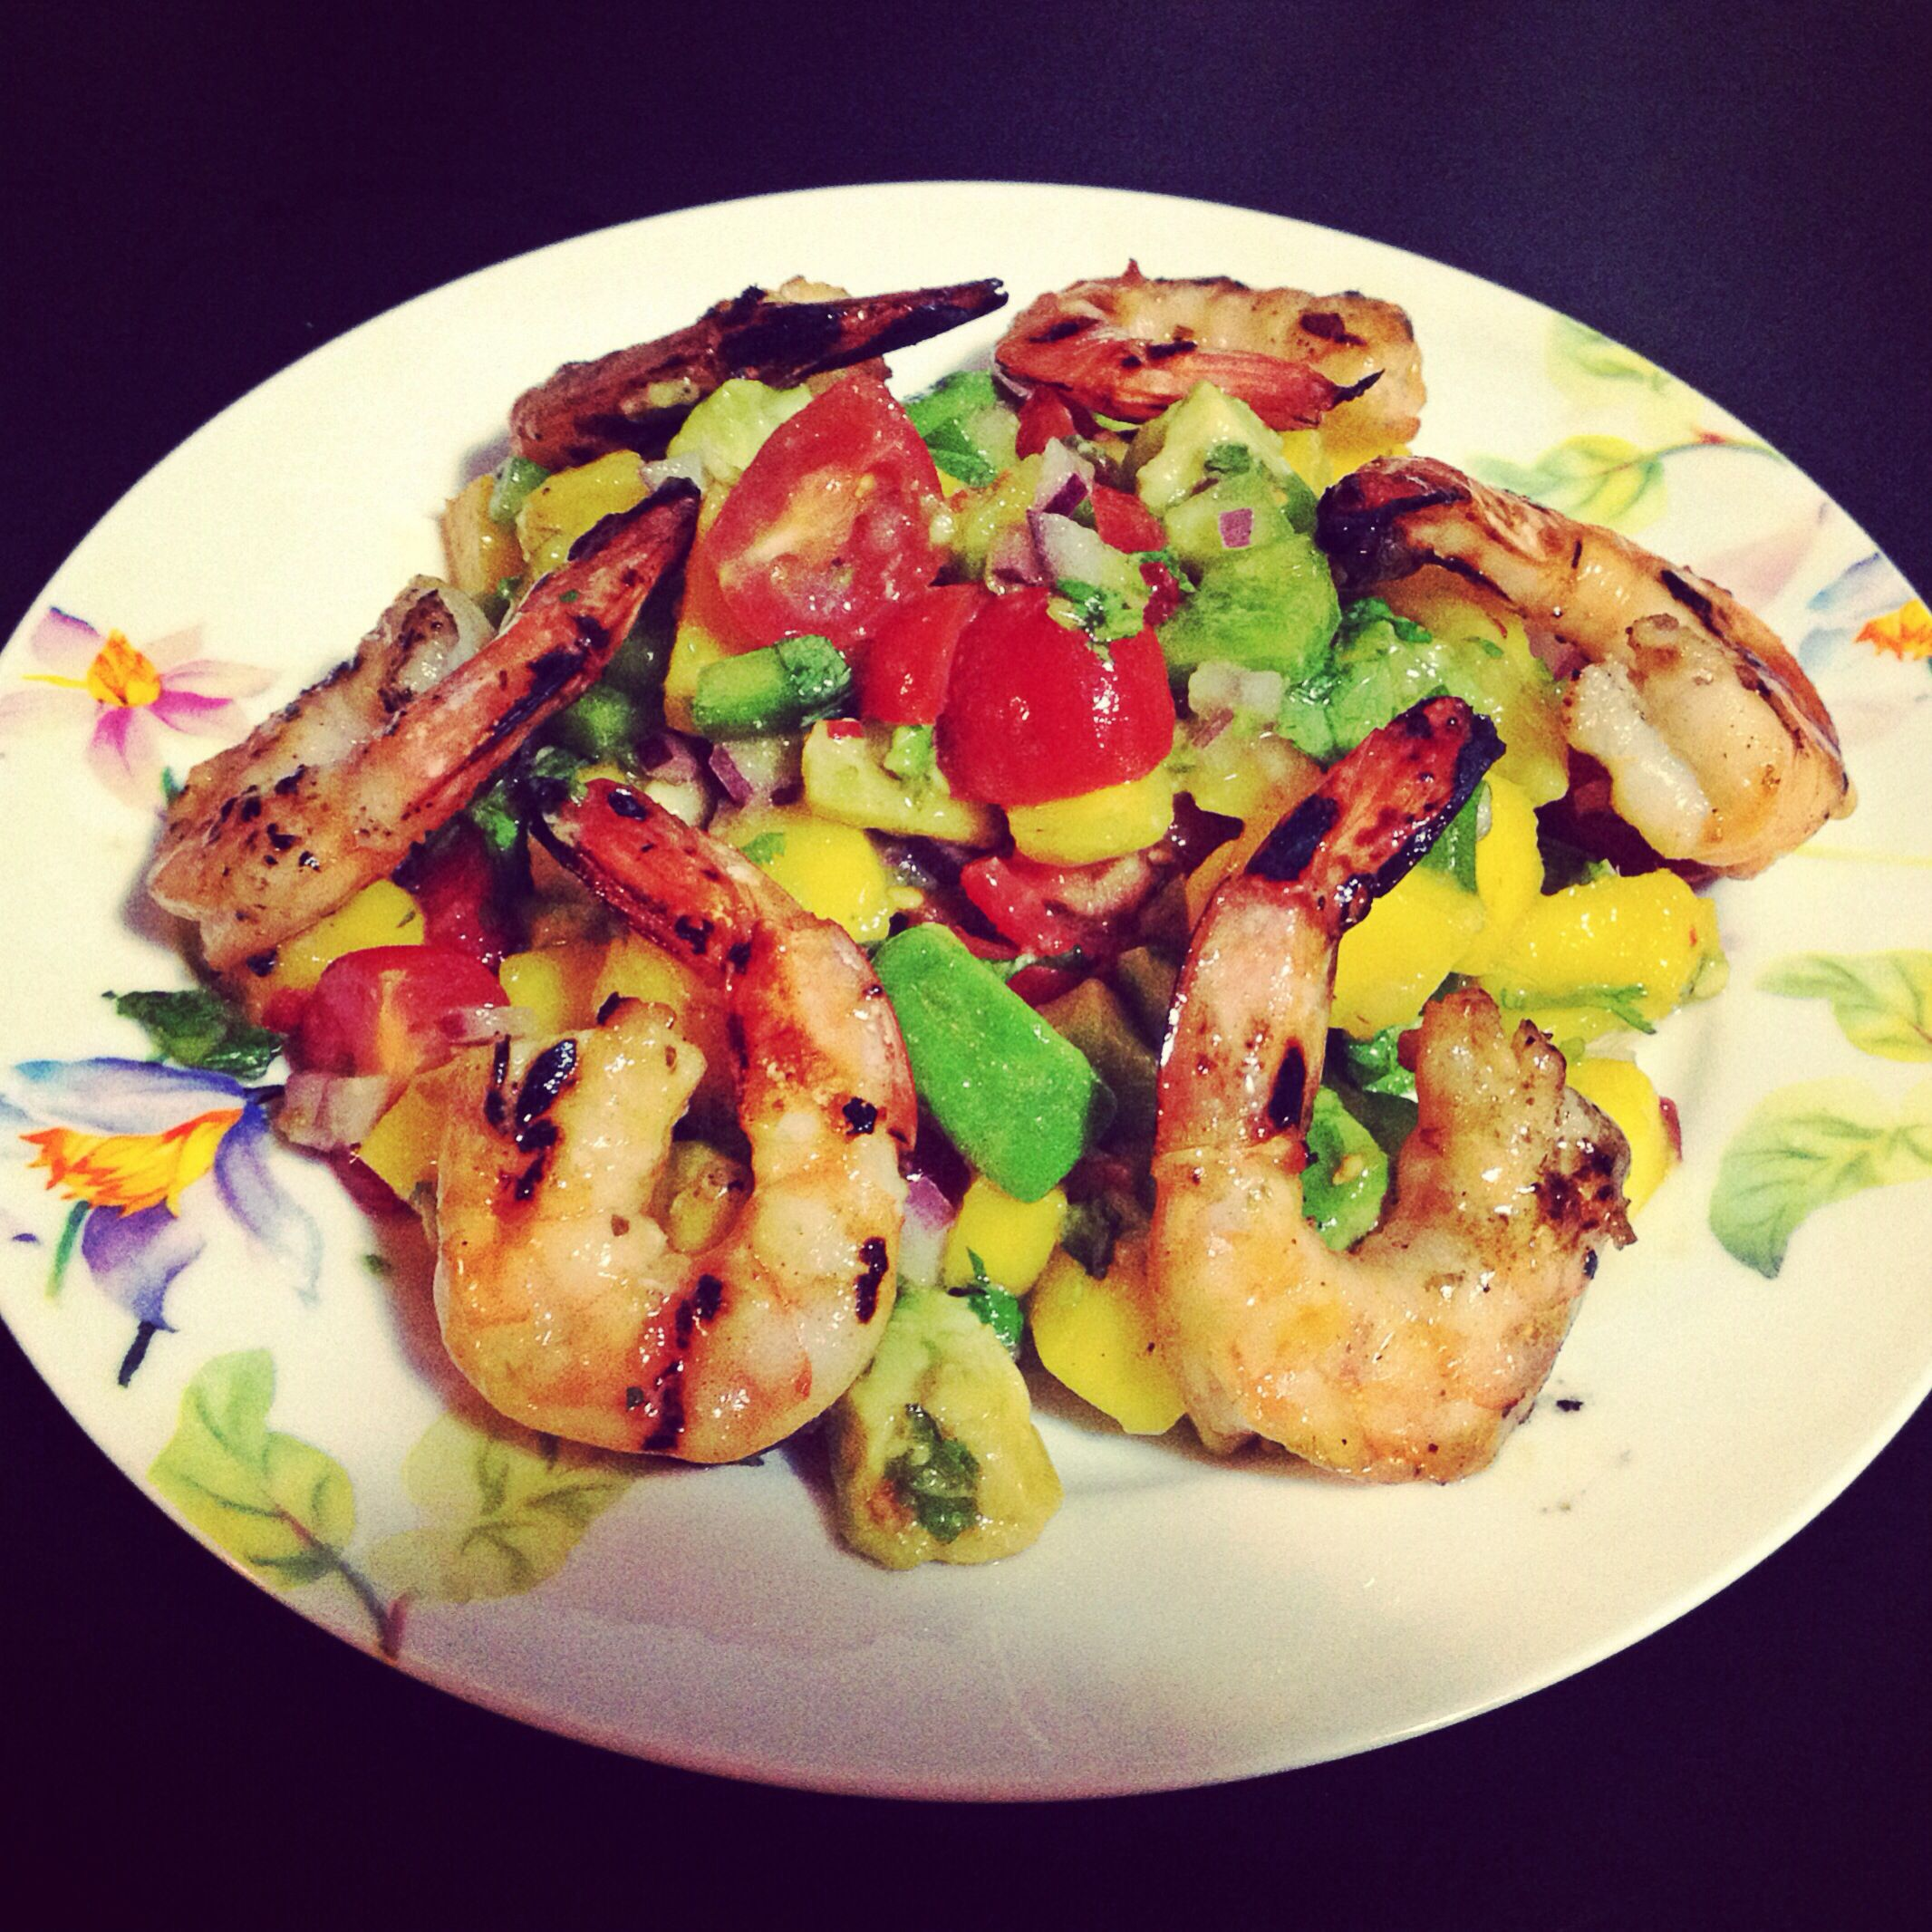 Pin by Cristy Camacho on Dinner is served! | Pinterest